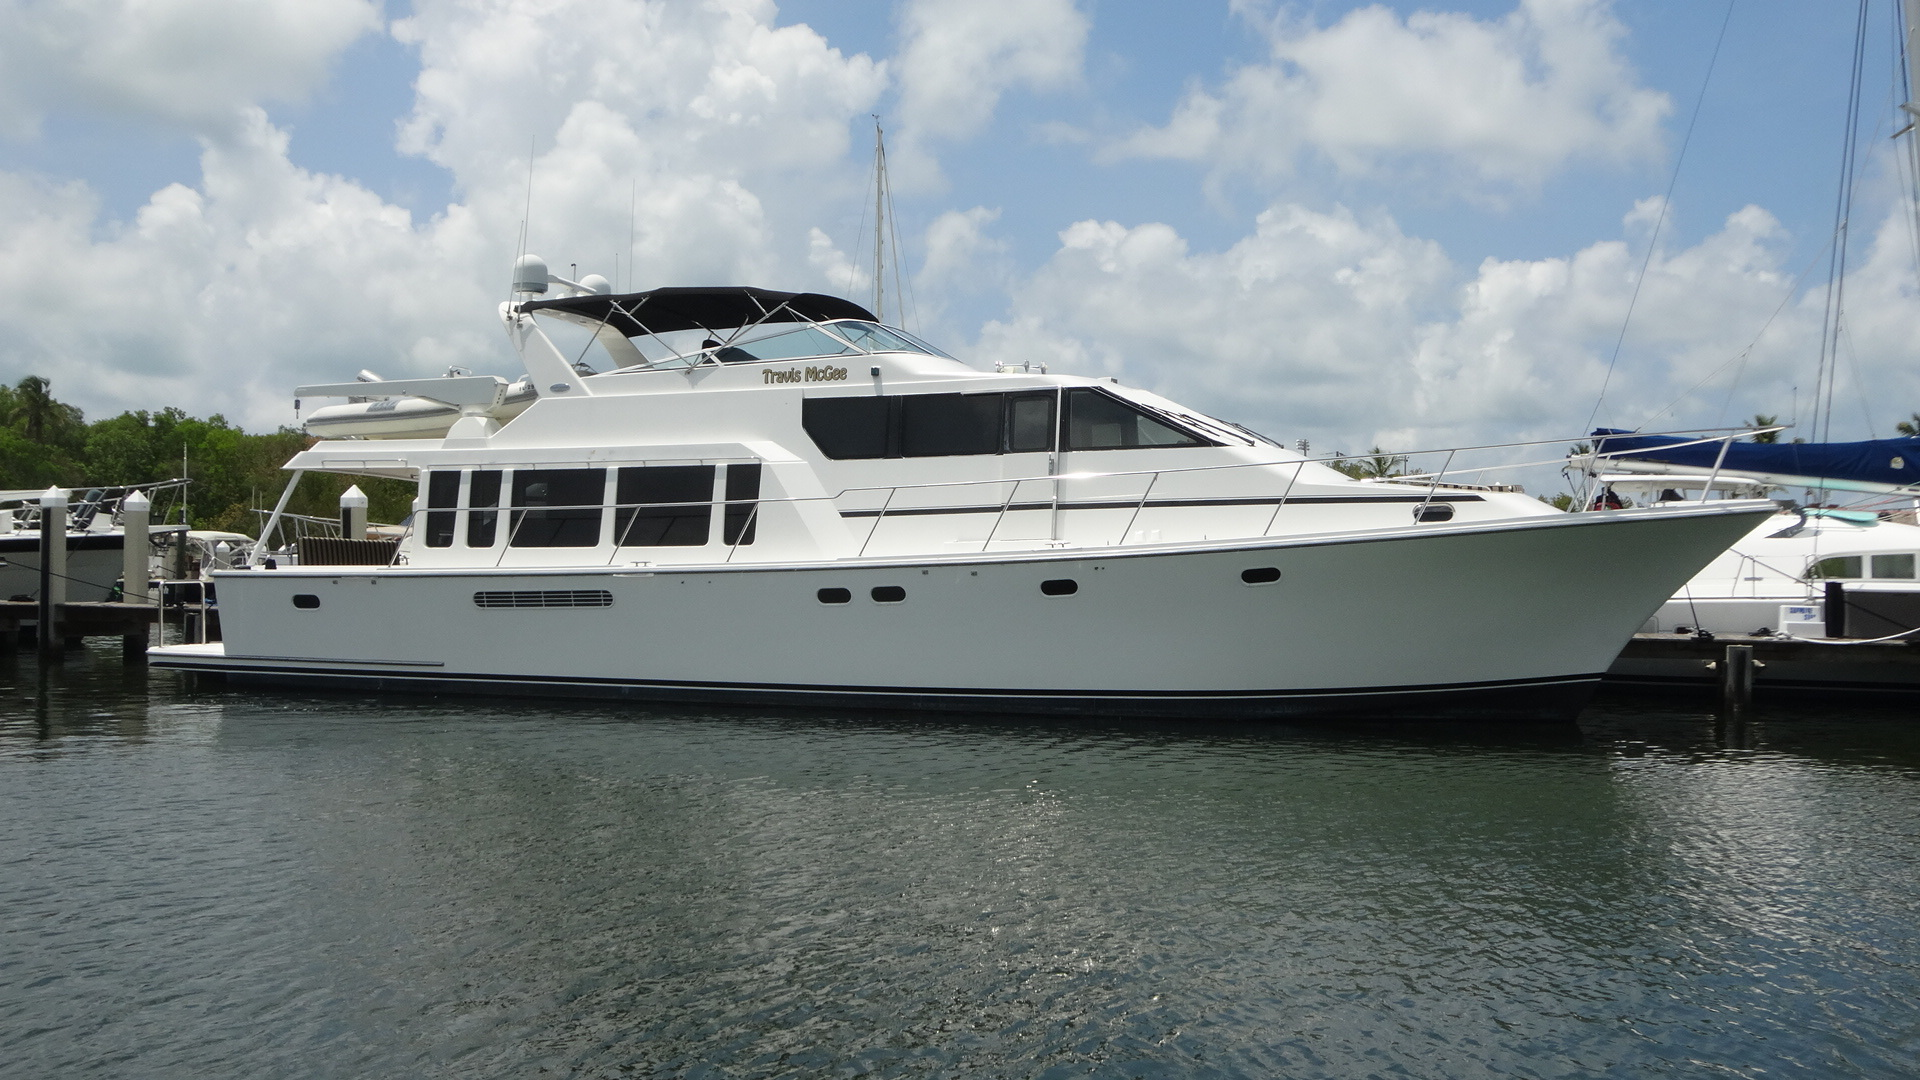 65' Pacific Mariner 2000 Pilothouse TRAVIS MCGEE